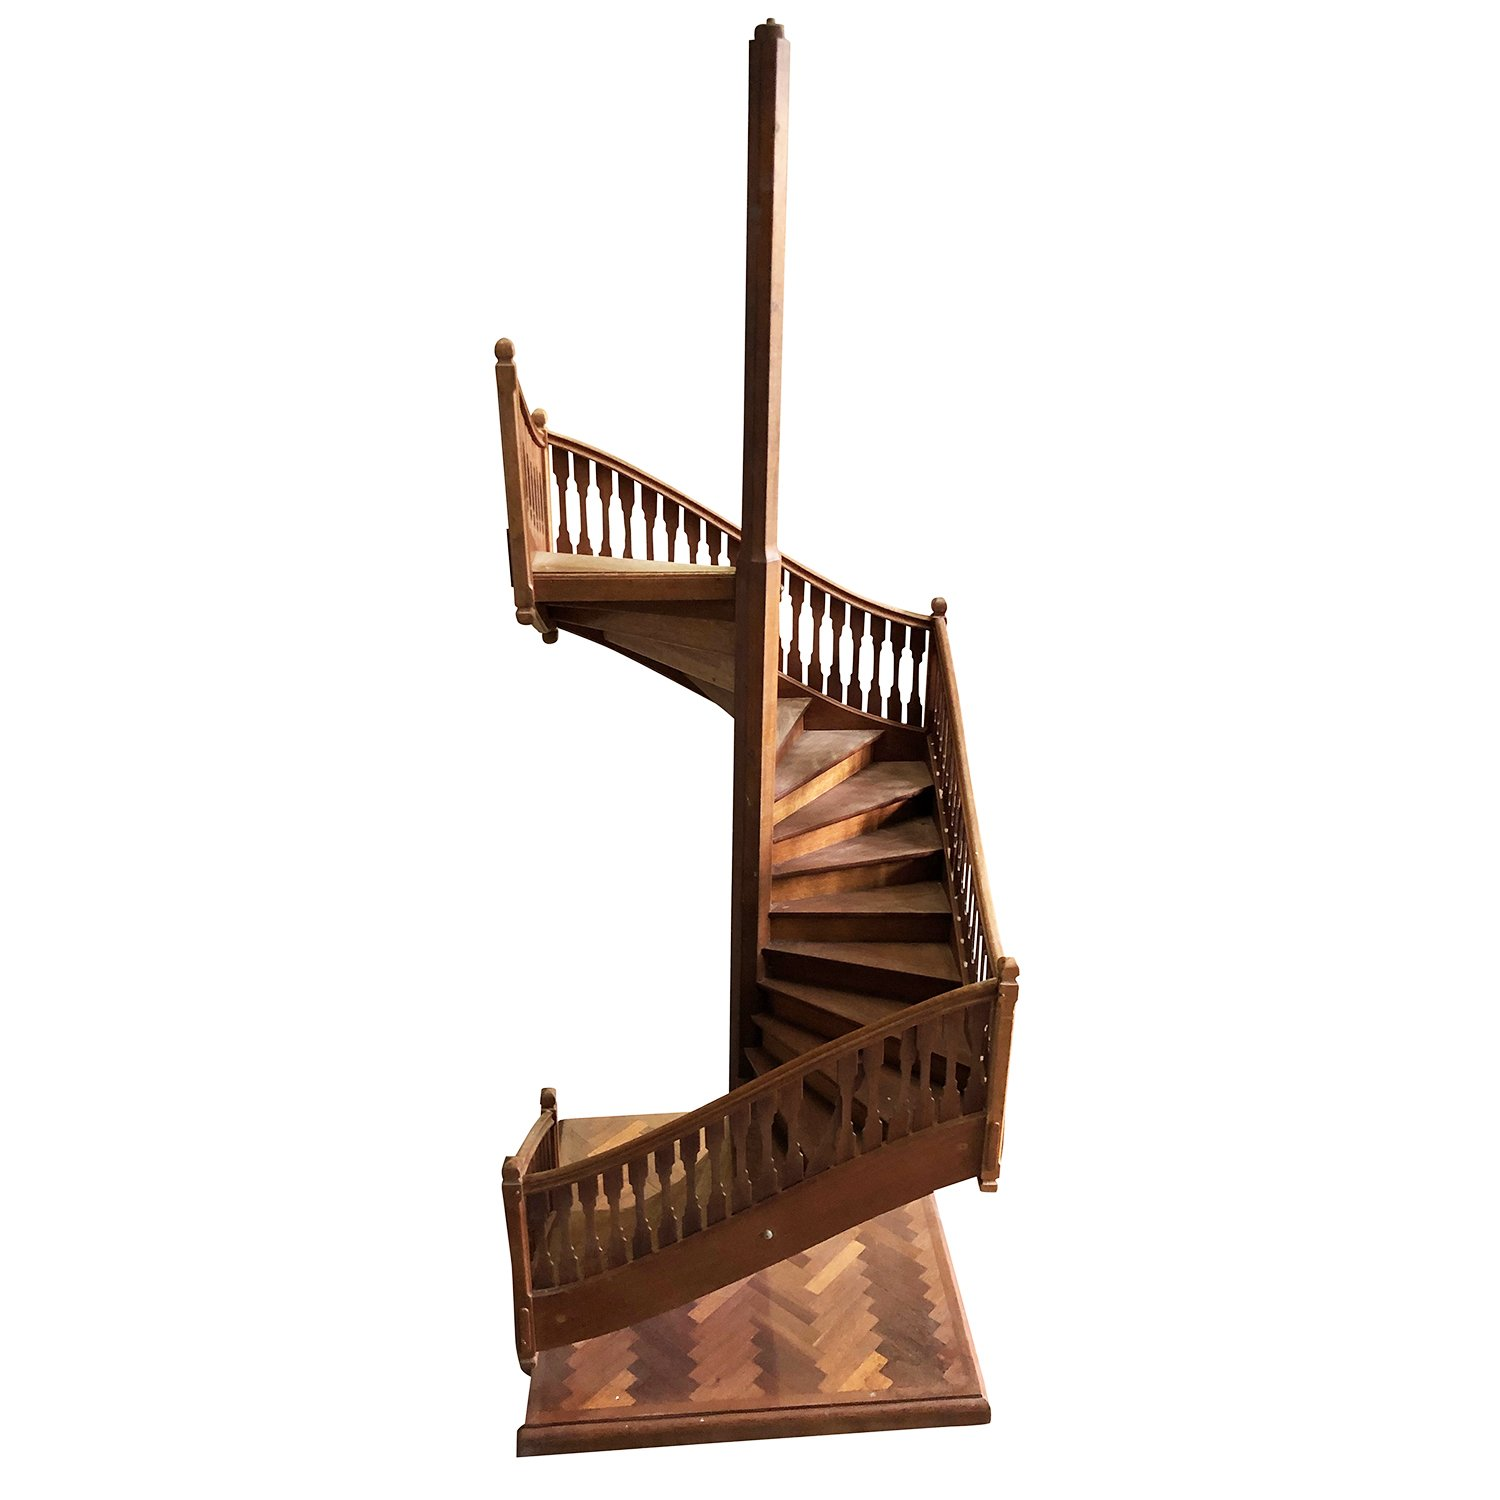 19th Century French Miniature Antique Spiral Staircase Architectural Model